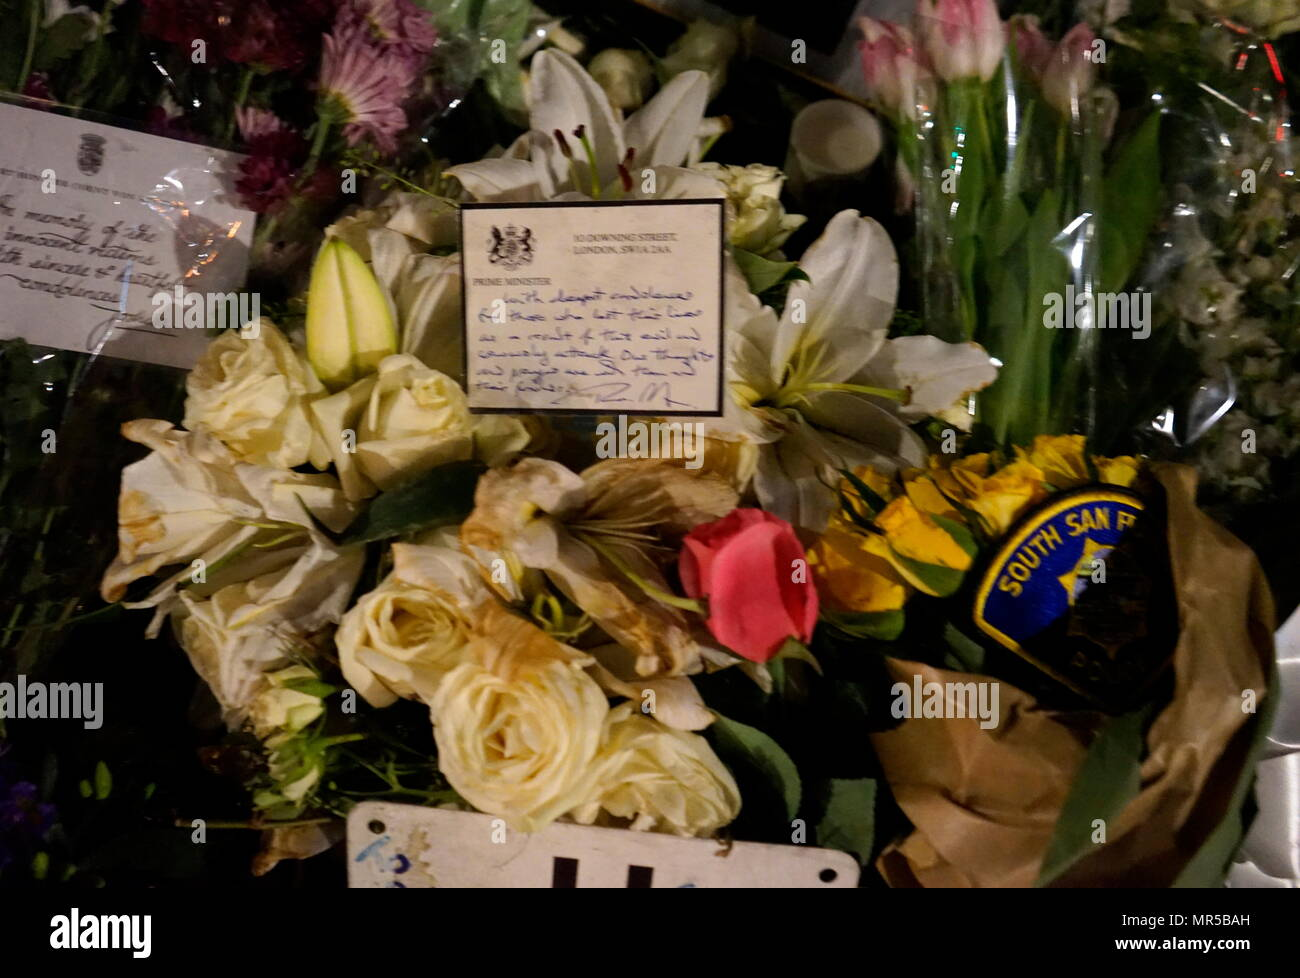 Photograph showing the tributes placed outside of Parliament in London, after the 22 March 2017, terrorist attack. The attacker, 52-year-old Briton Khalid Masood, drove a car into pedestrians on the pavement along the south side of Westminster Bridge and Bridge Street, injuring more than 50 people, four of them fatal. Dated 21st Century - Stock Image